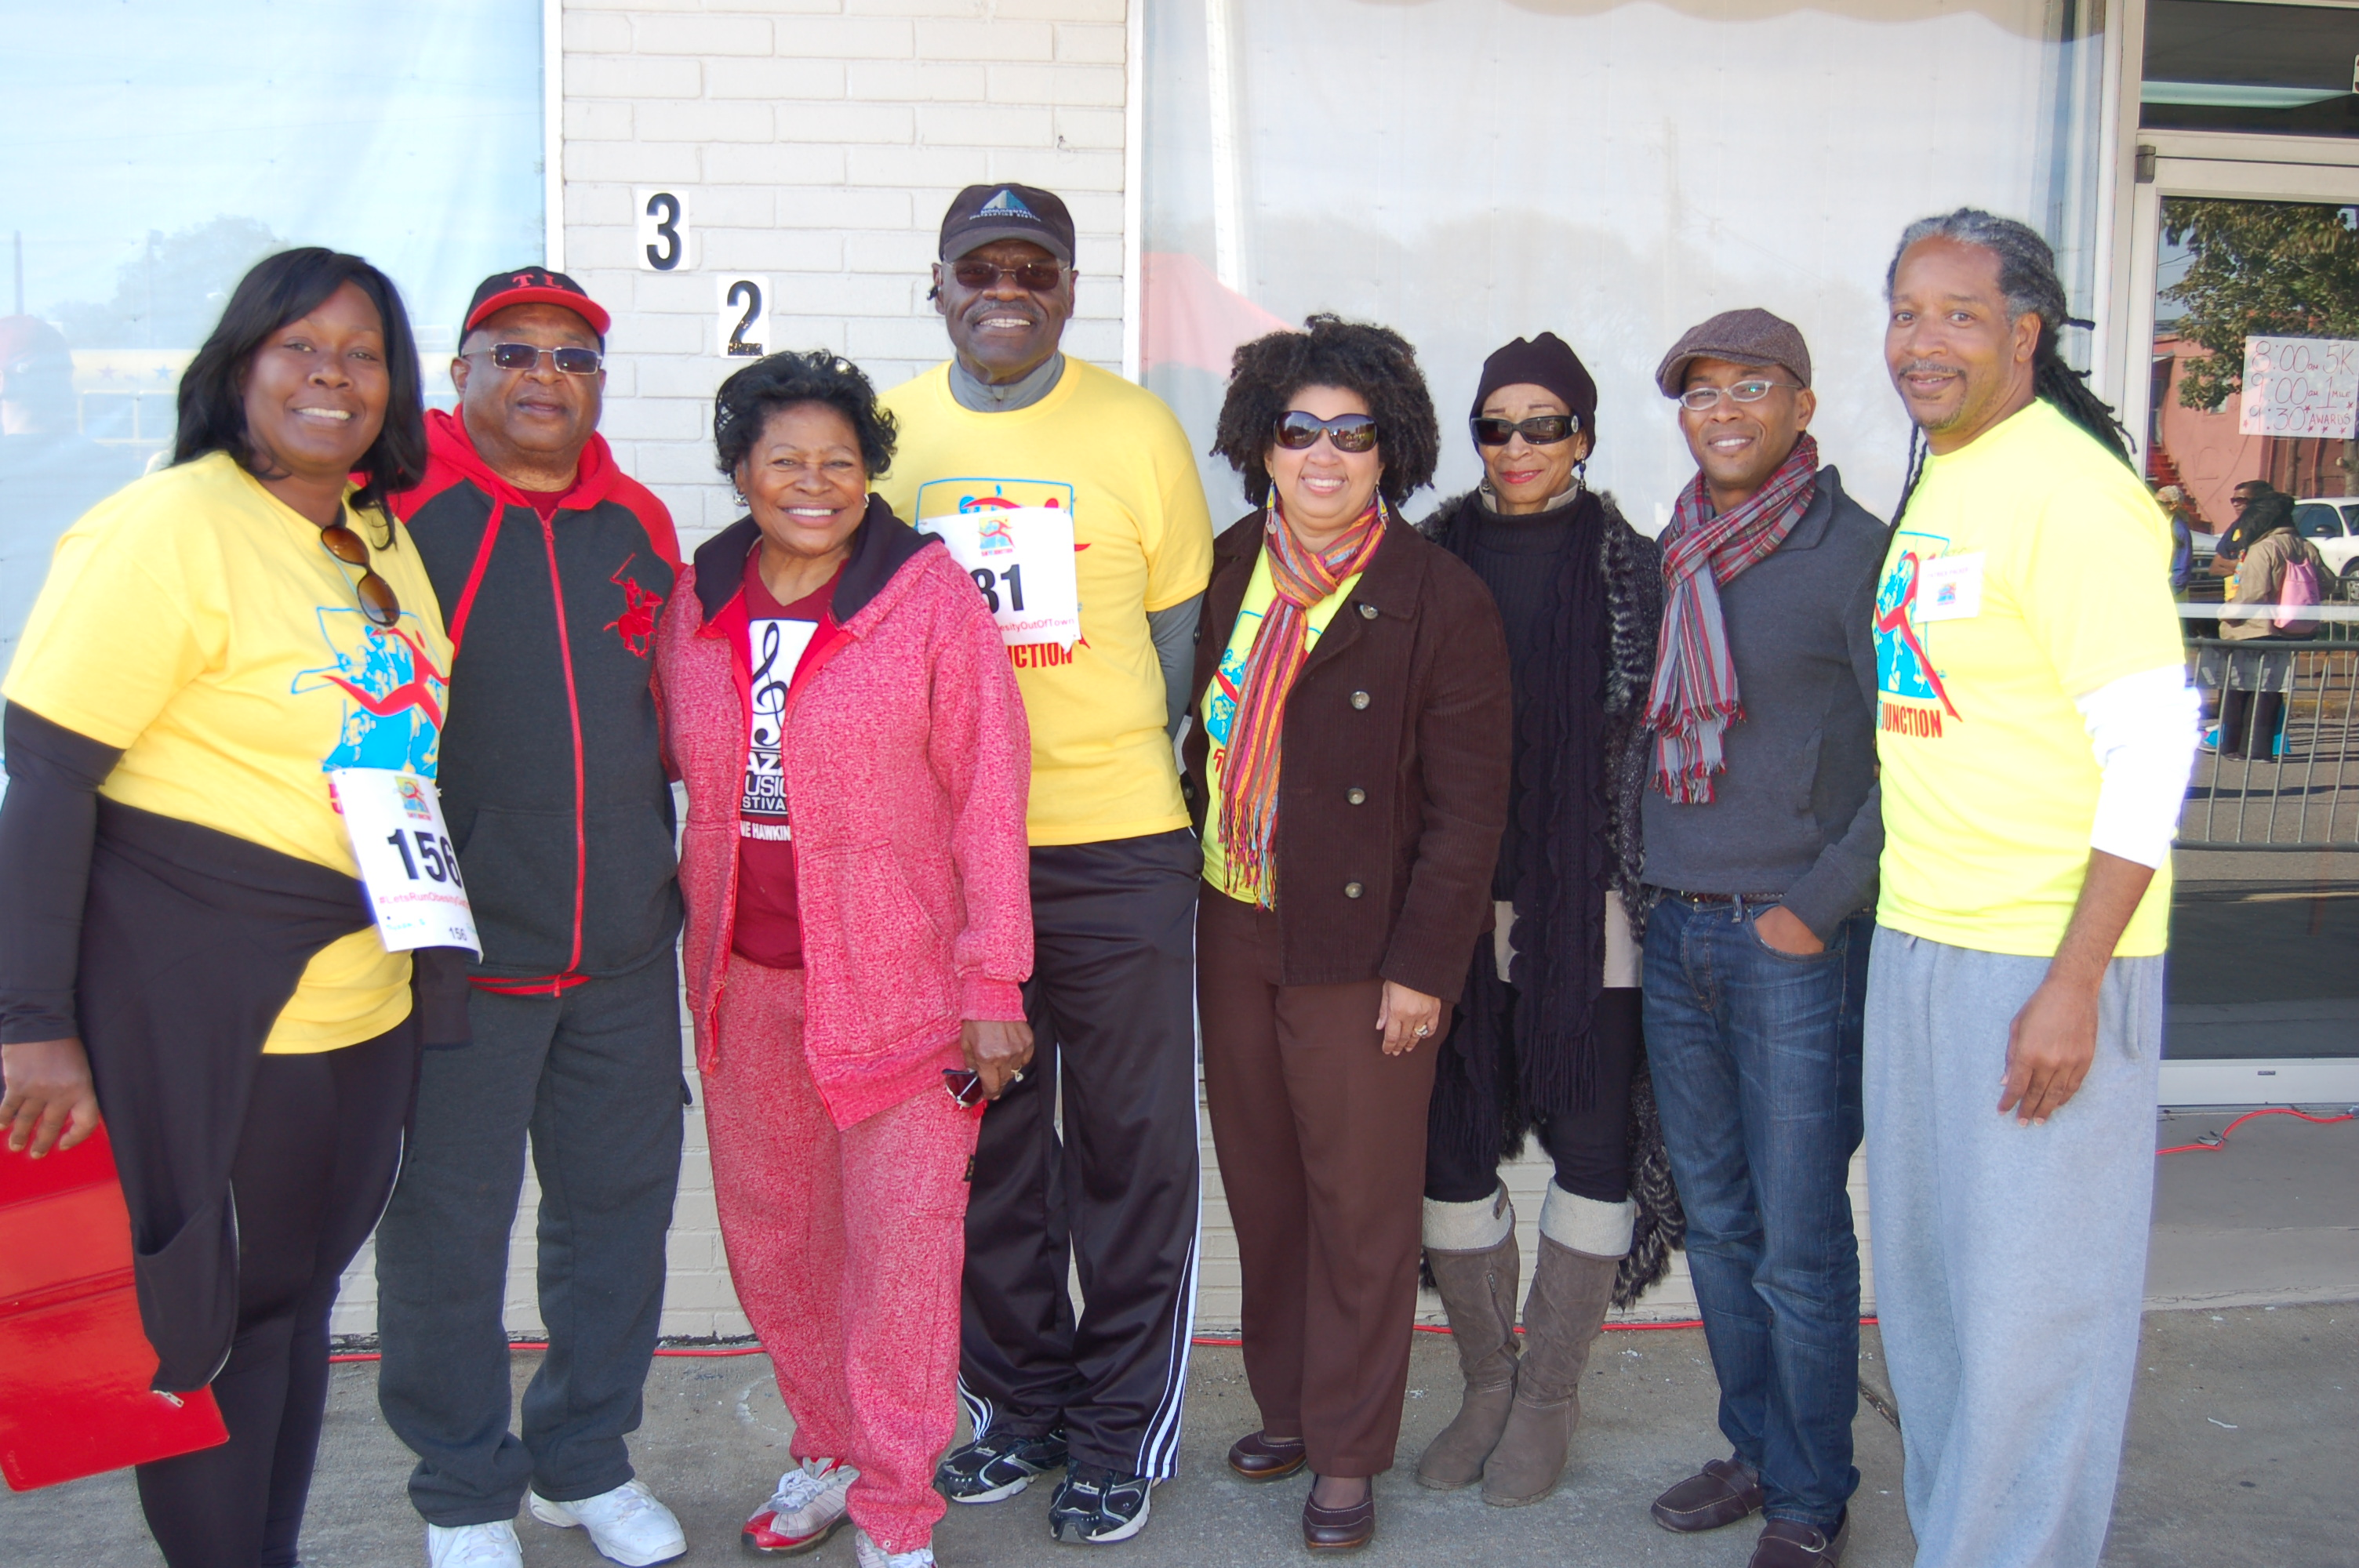 From left, City Councilor Sheila Tyson, Ensley Neighborhood President George McCall, Community President Magnolia Cook, Board Member William Robertson, Jr. (deceased), President of Bethesda Life Center Bettina Byrd-Giles, Board Member Gwen DeRu, Board President Attorney Antonio Spurling and Community Leader Patrick Packer. (Provided photo)